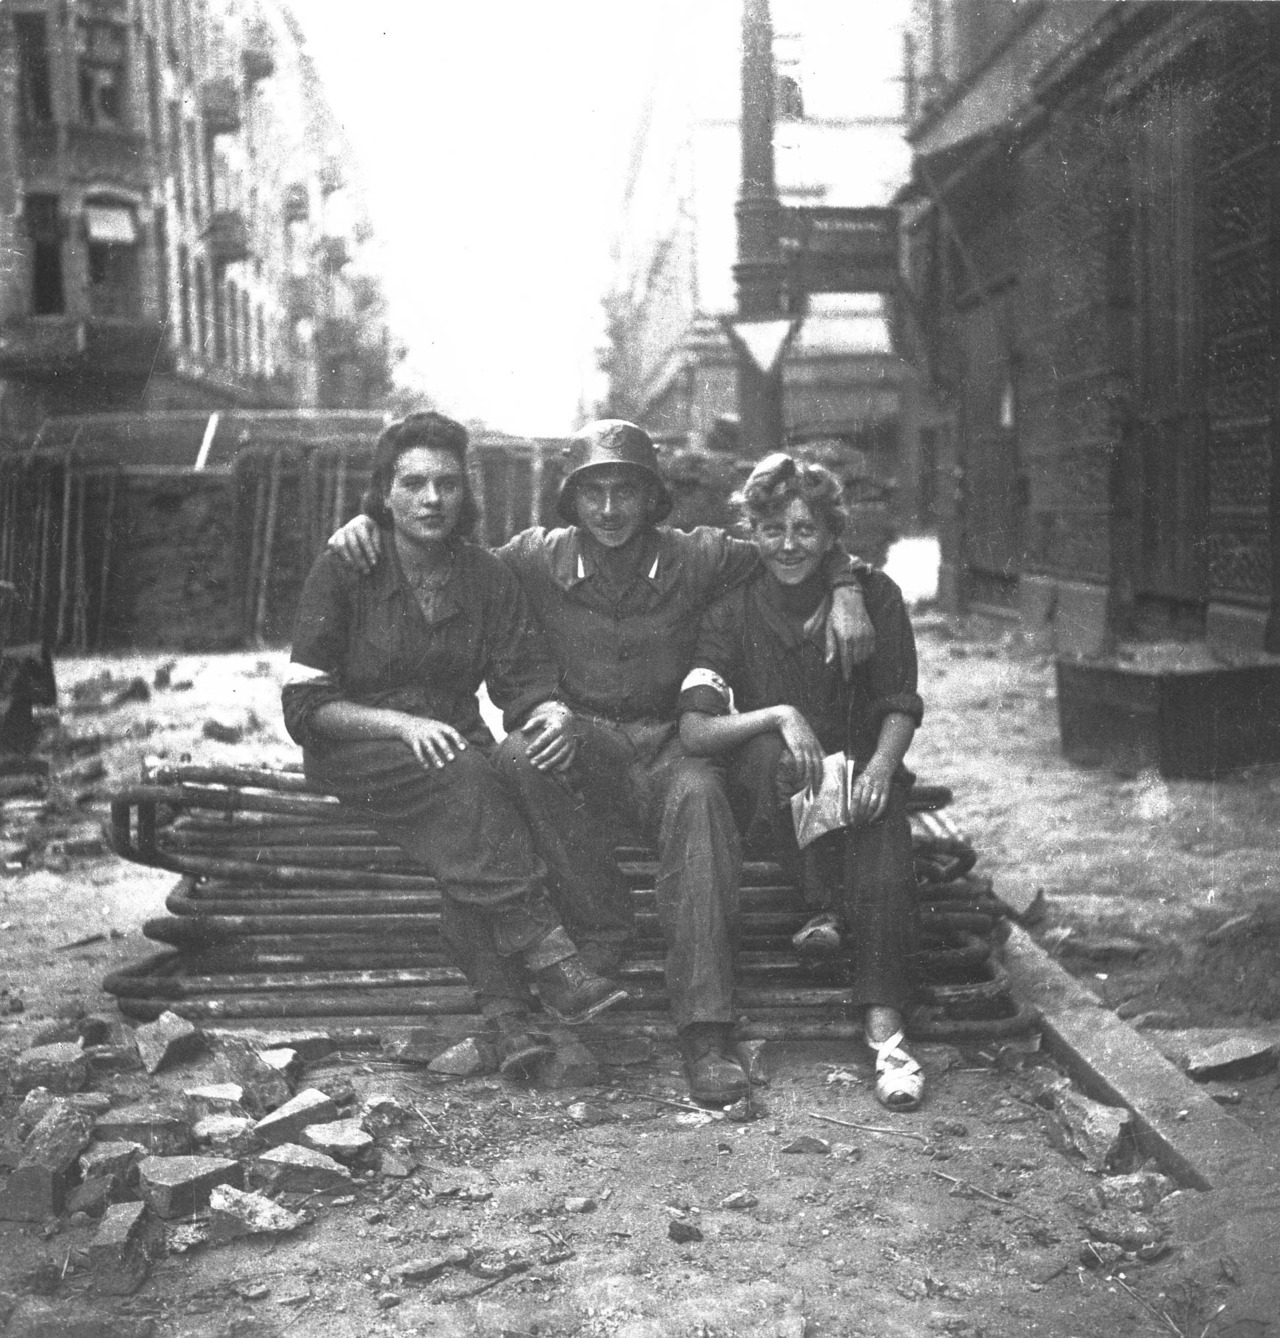 Insurgents of the Warsaw uprising, 1944.